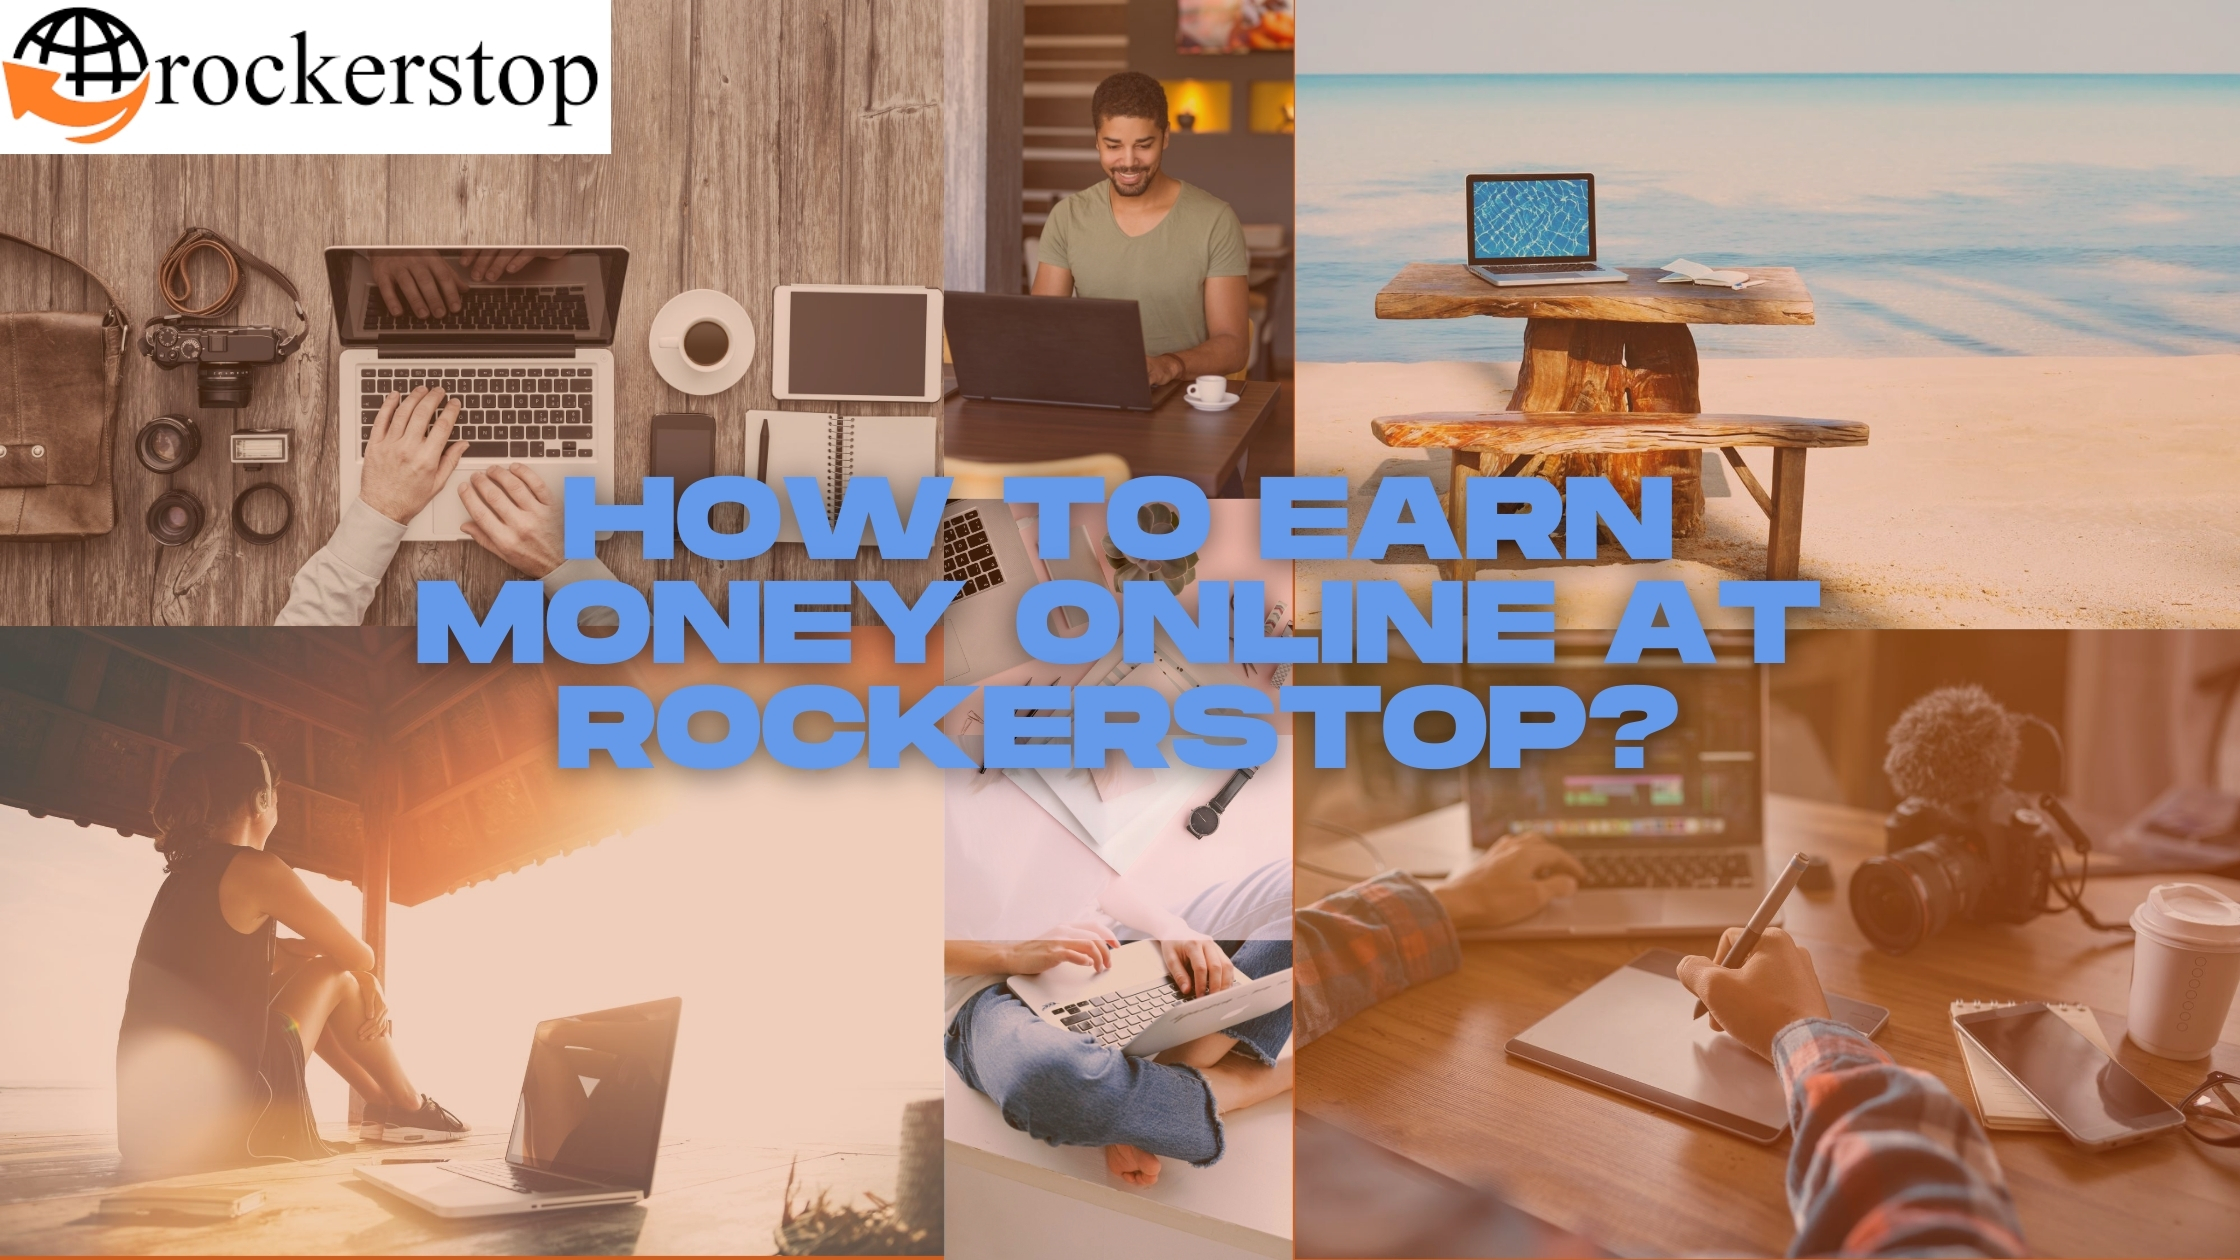 How-To-Earn-Money-Online-at-Rockerstop